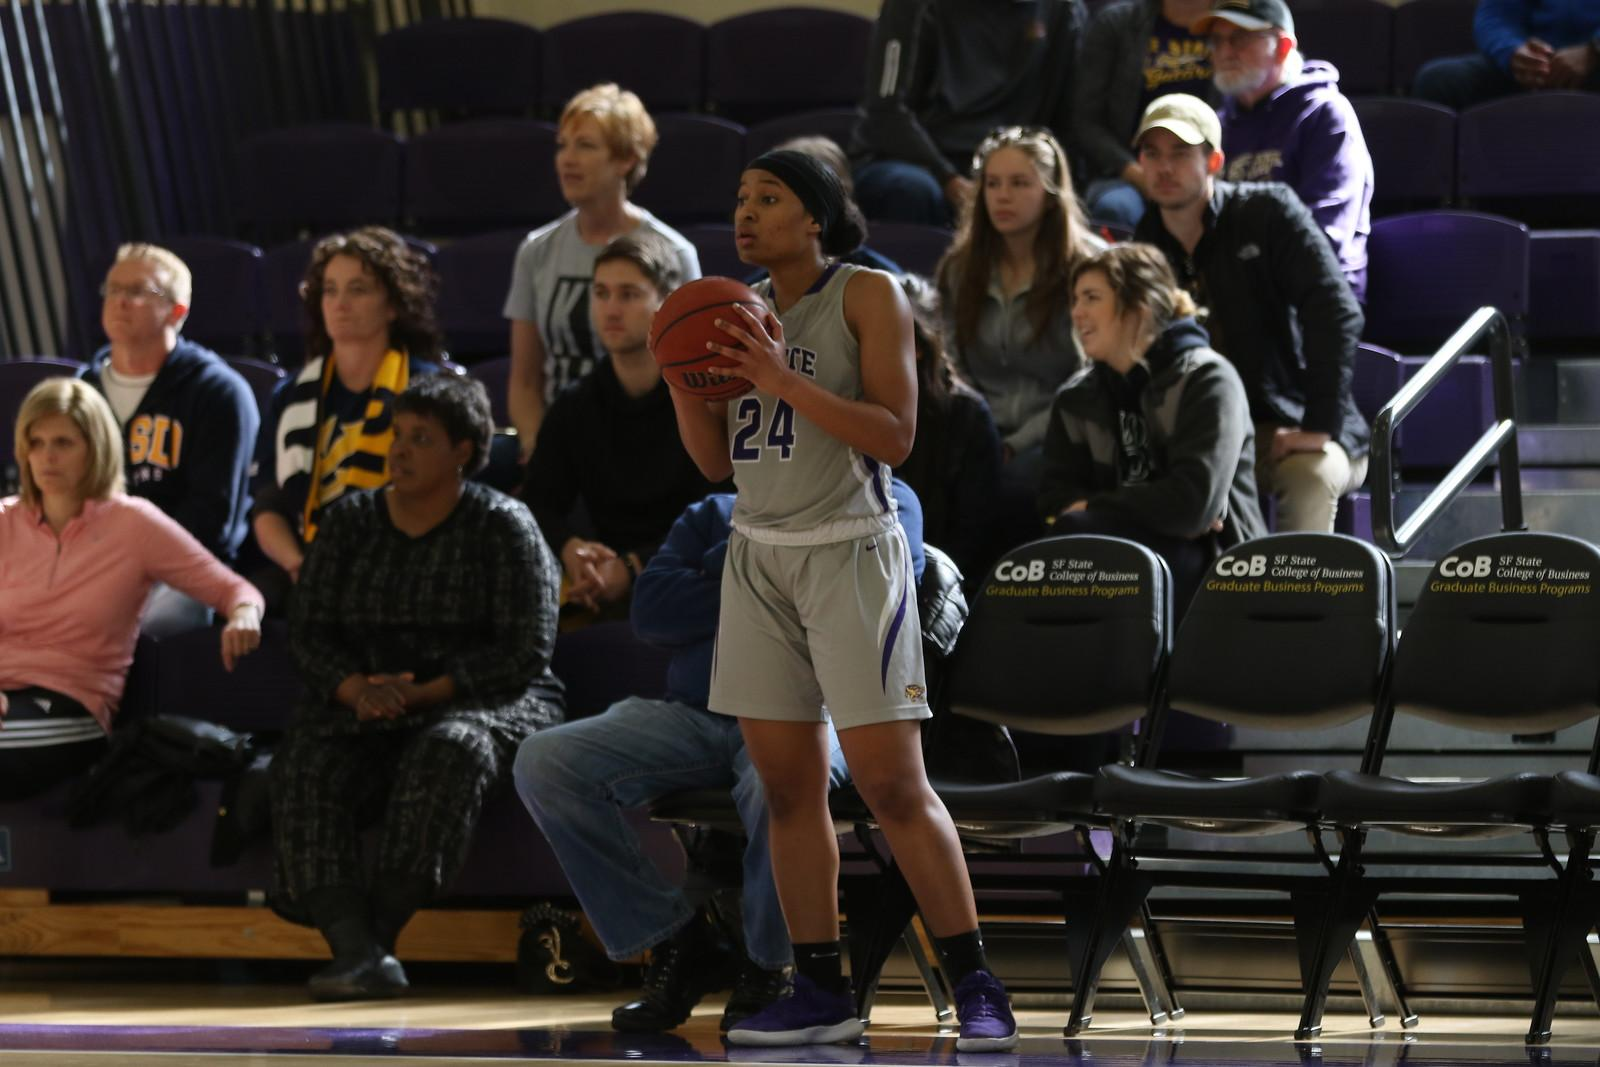 Tiebreaker nets women's basketball first playoff appearance since 2013